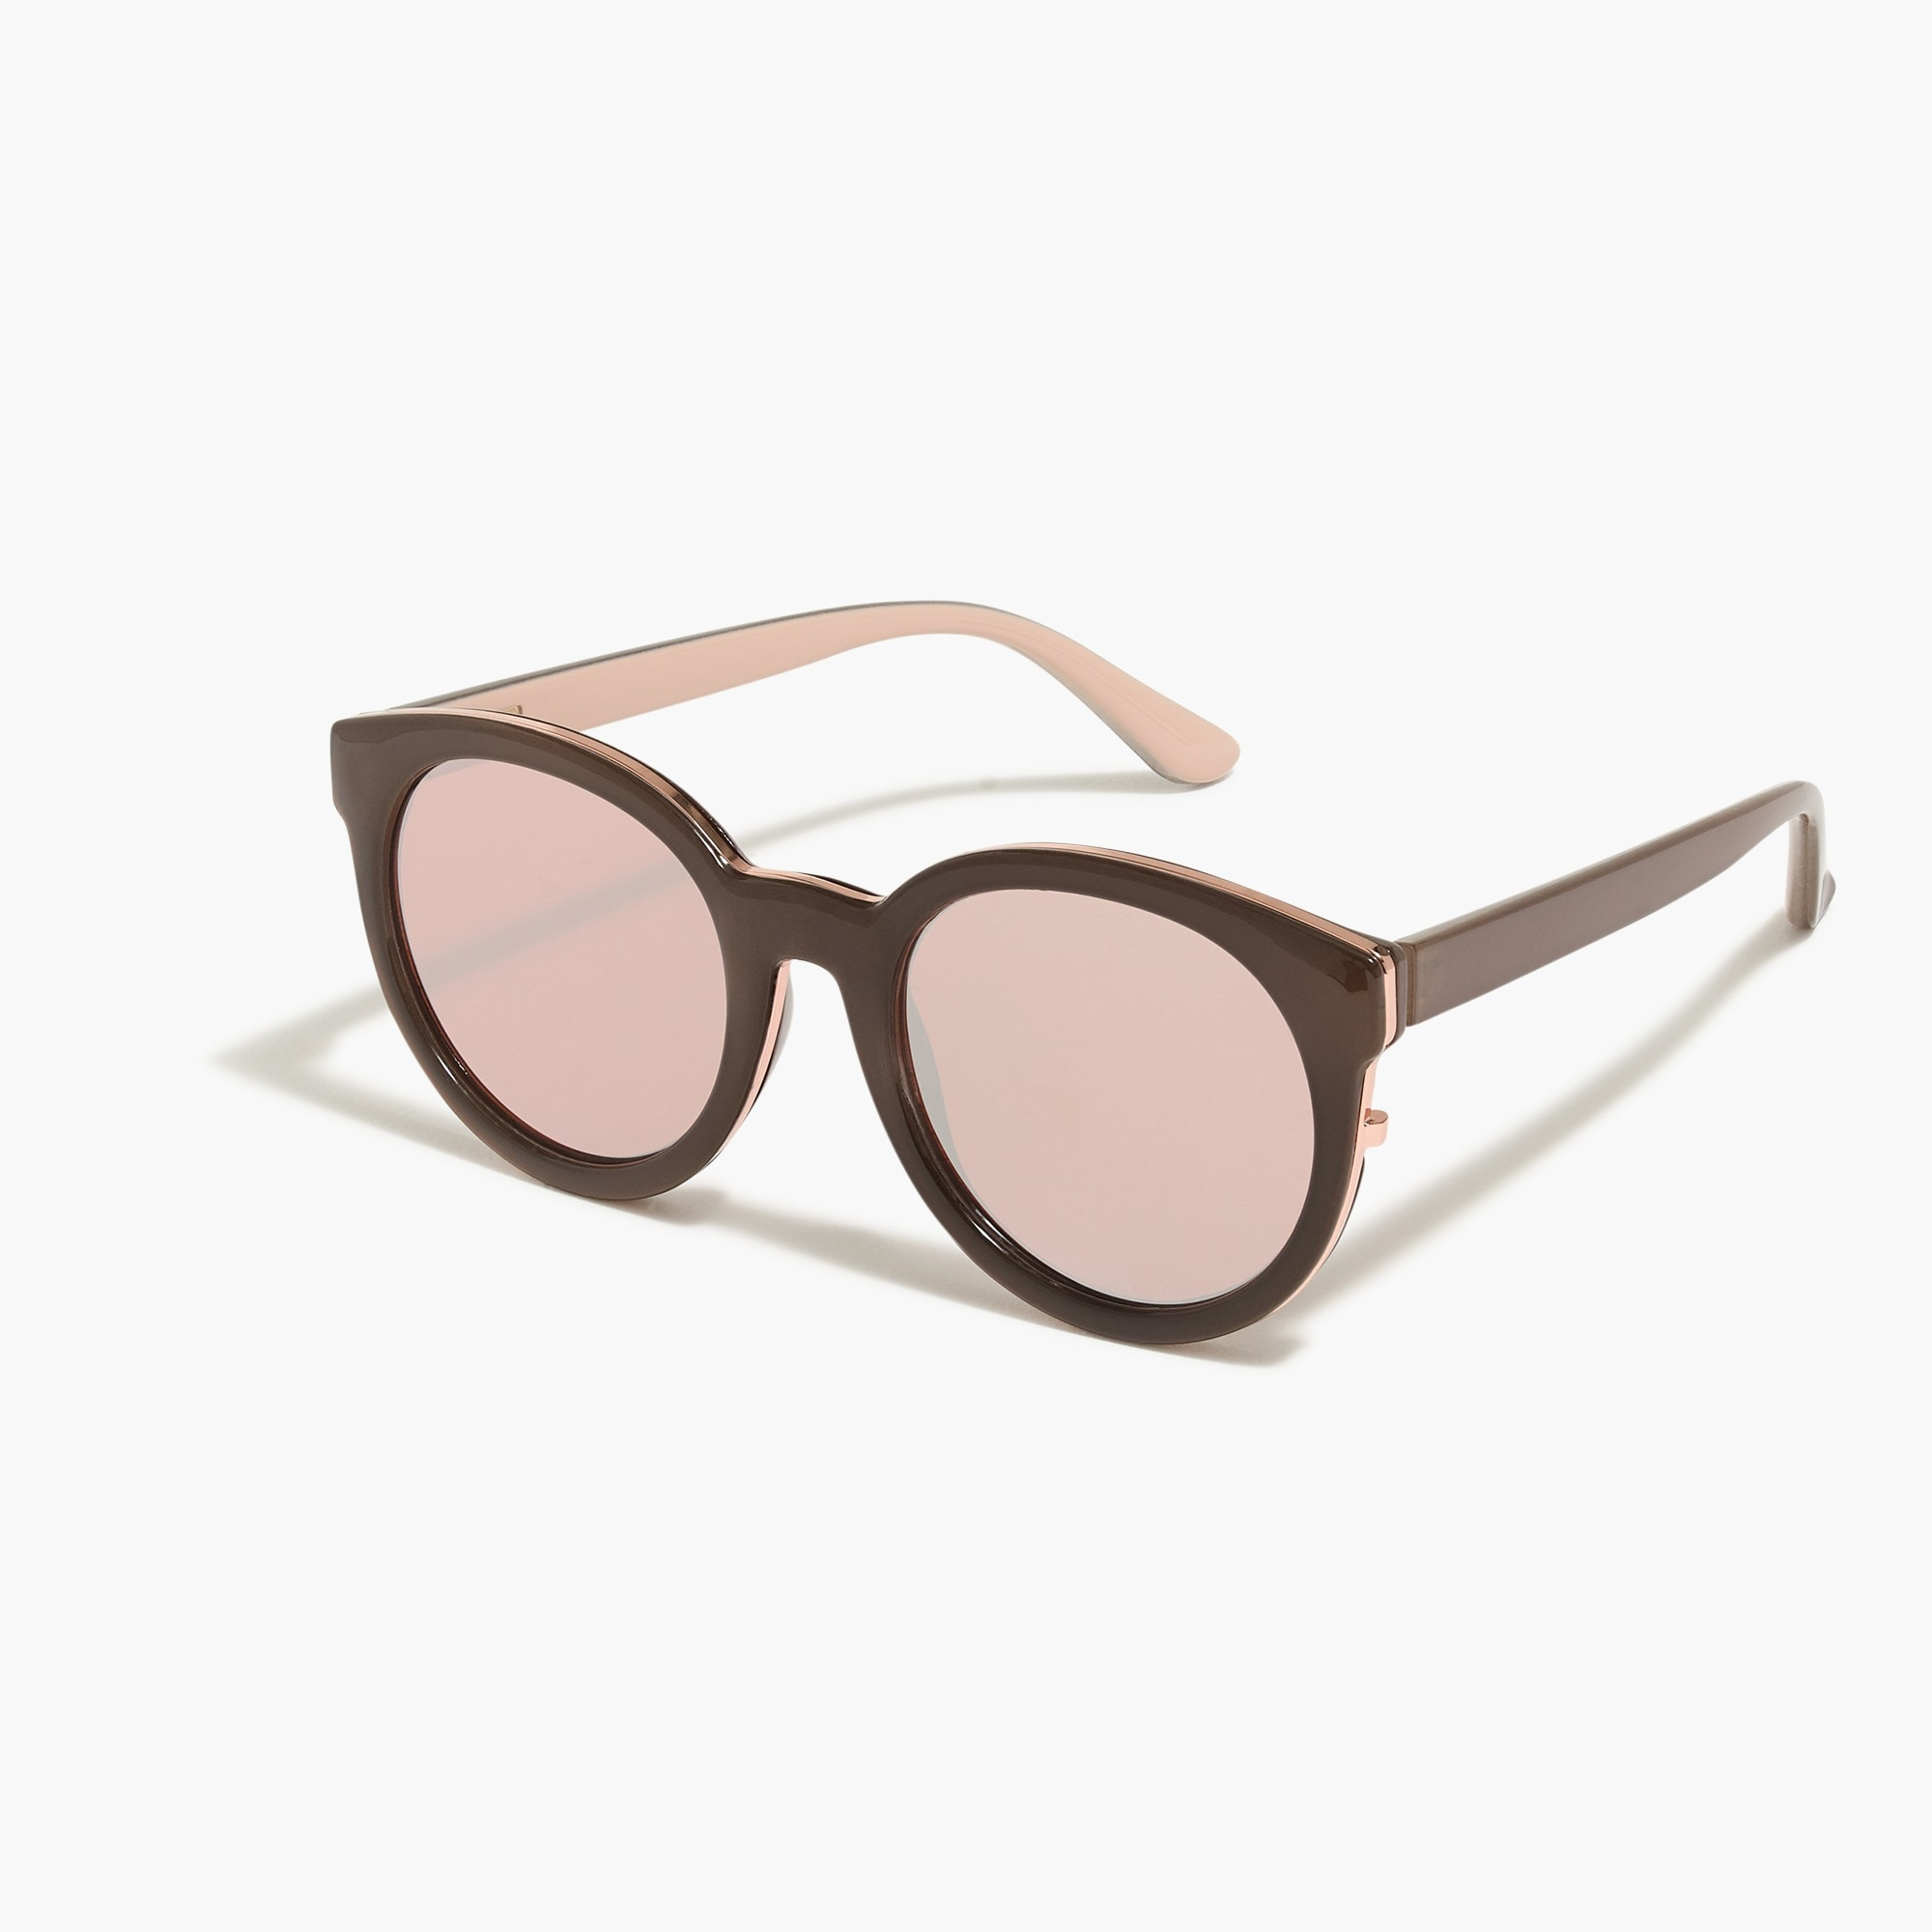 palm desert sunglasses : factorywomen sunglasses & eyeglasses